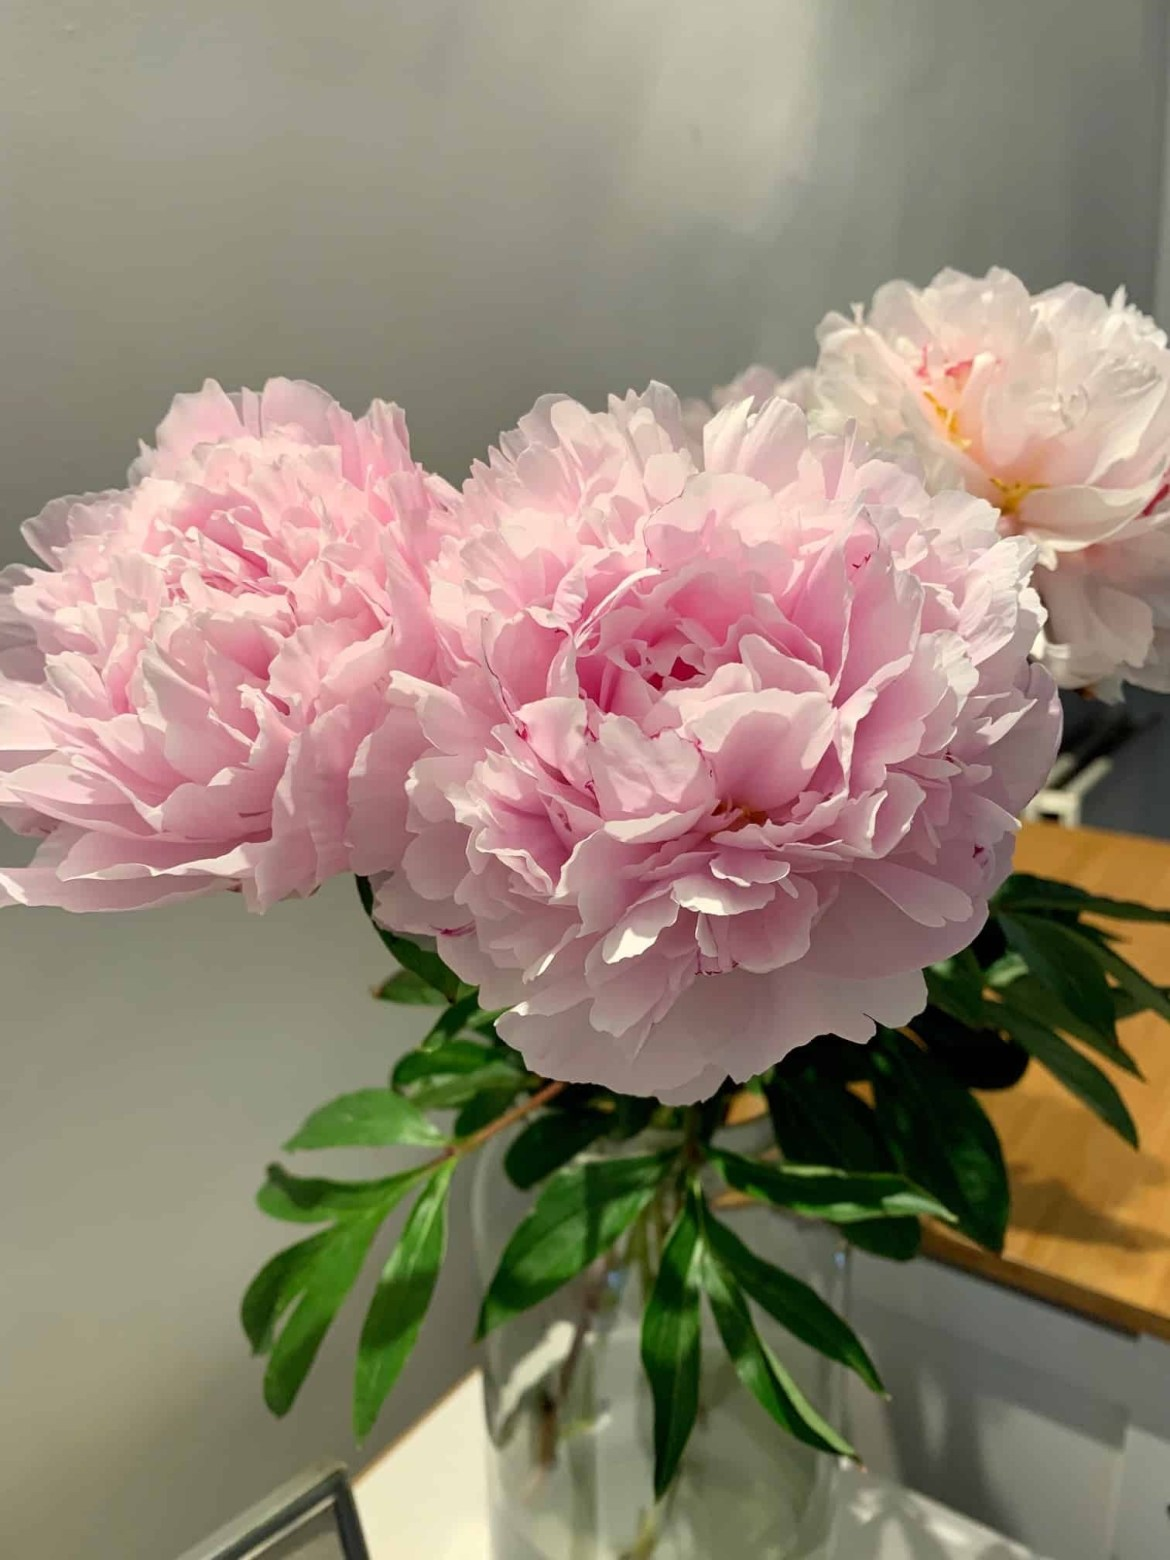 Bunch of pink peonies